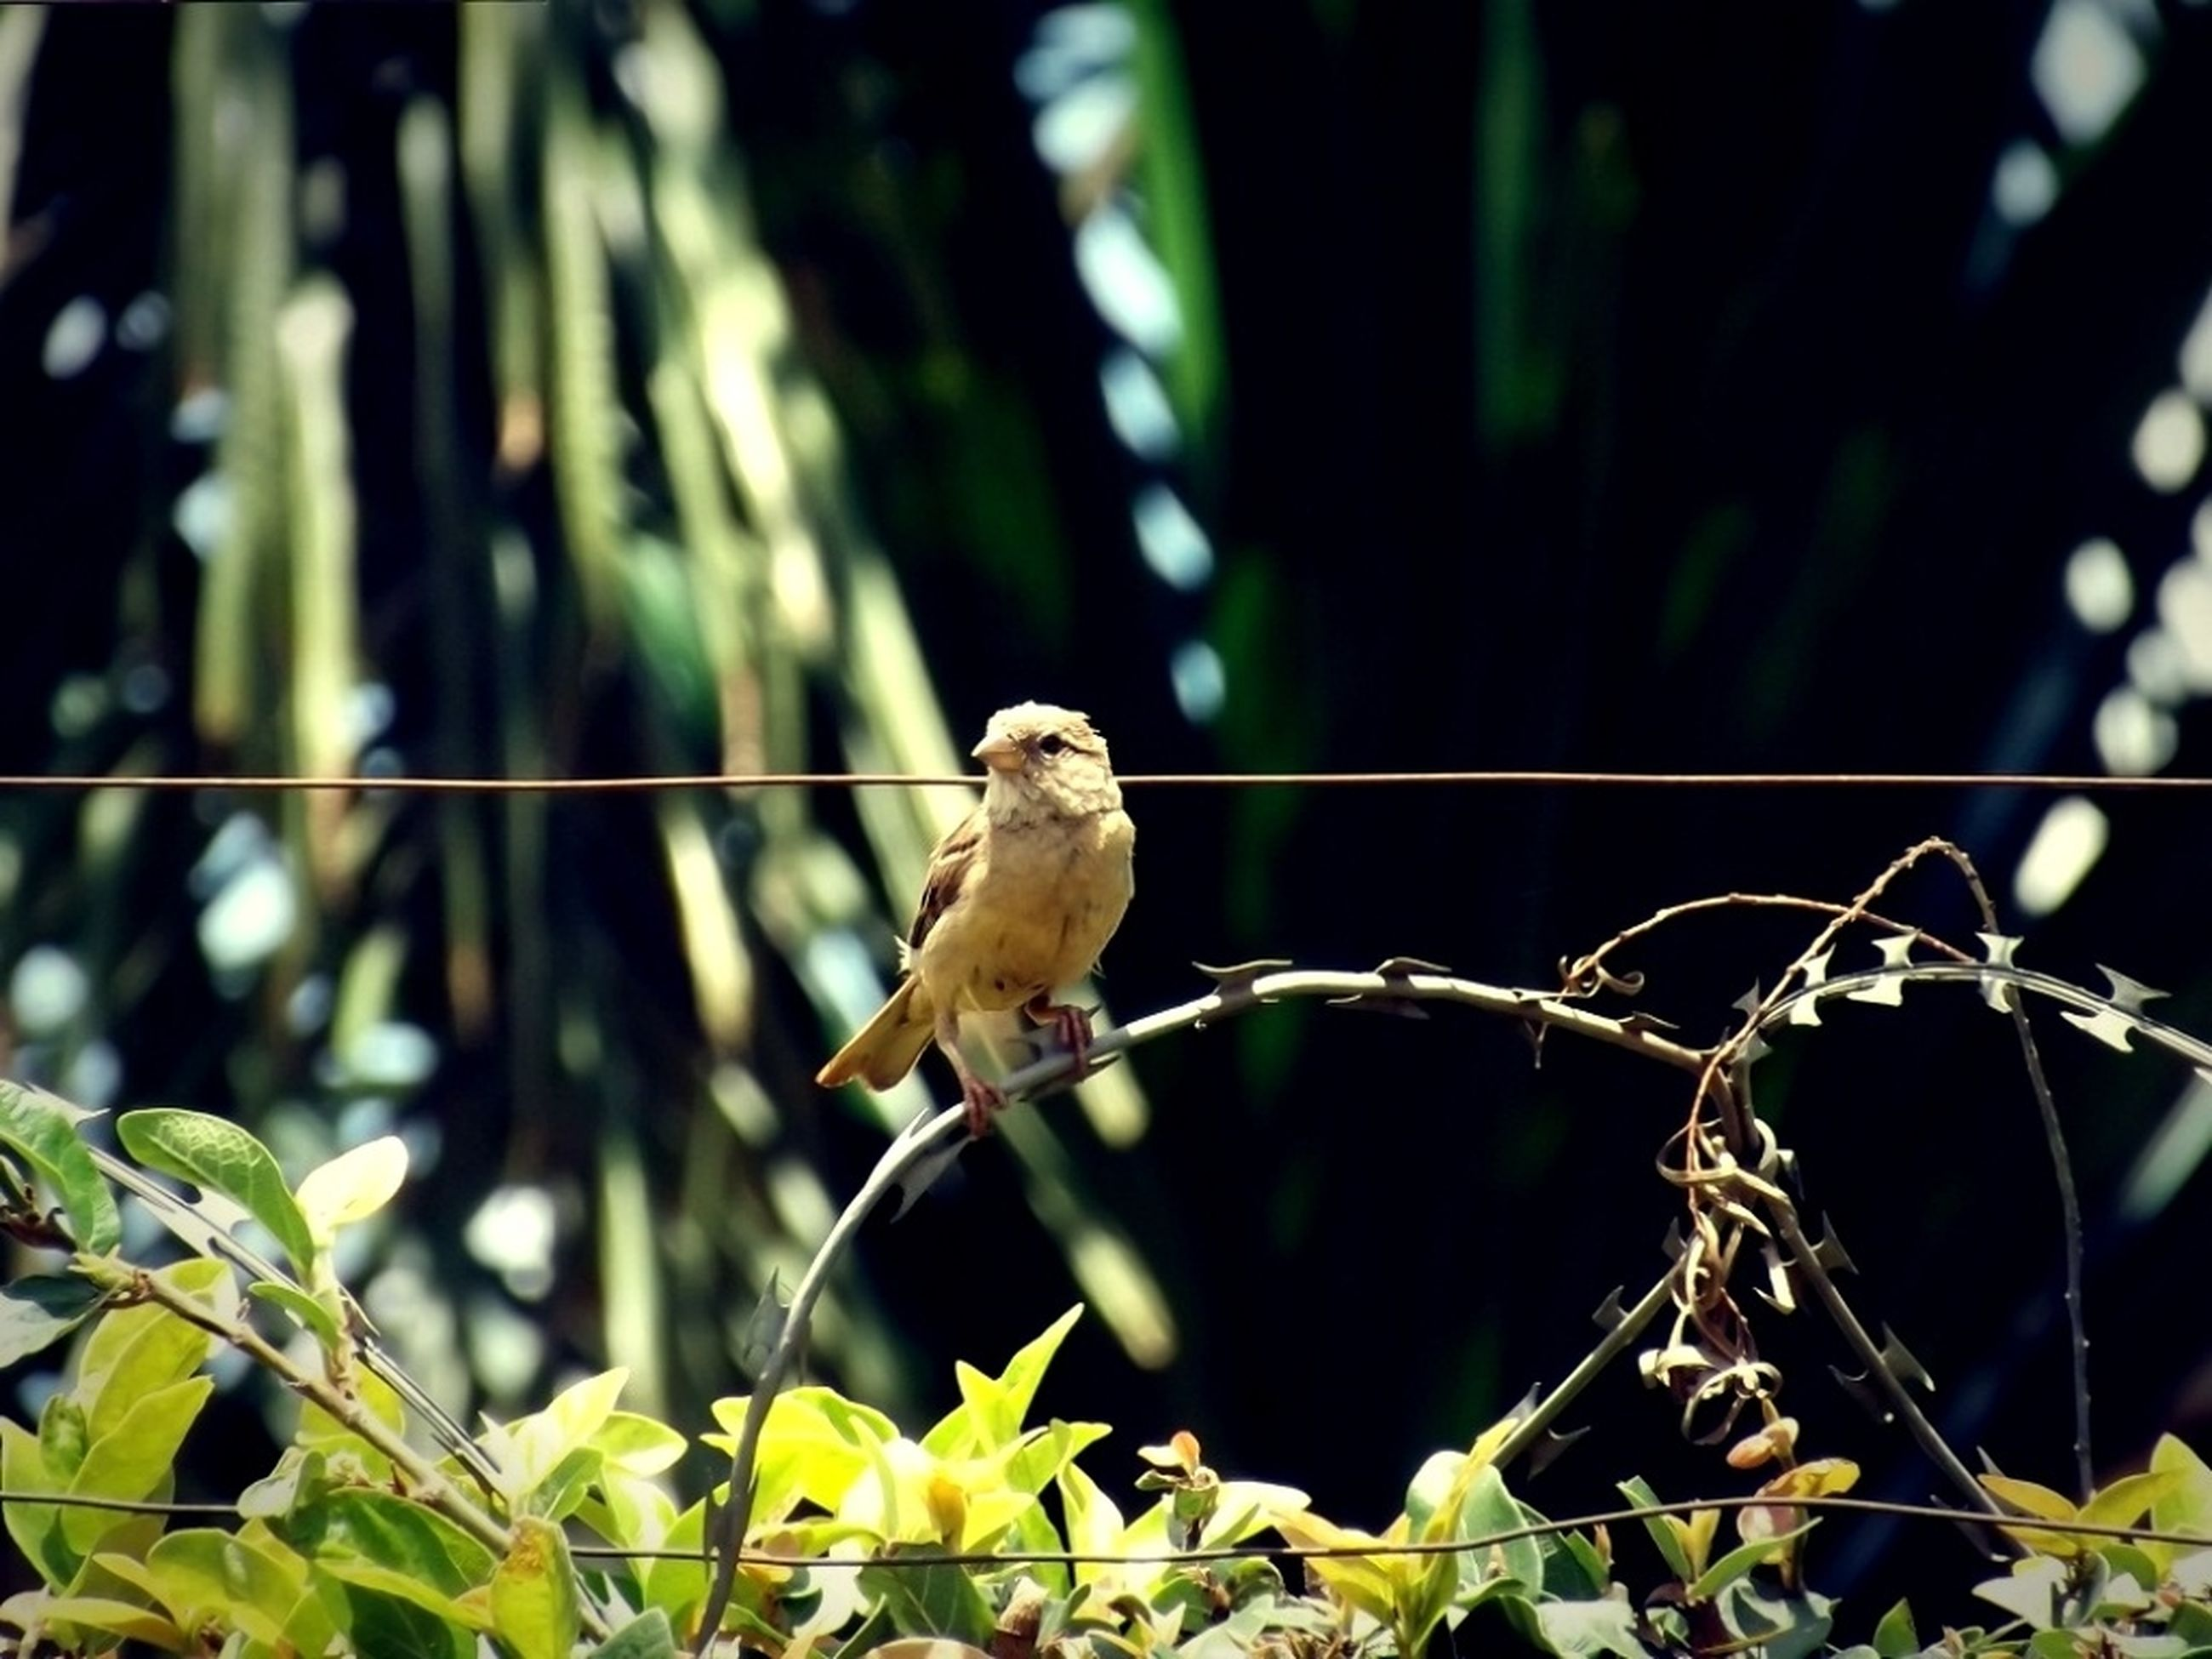 animal themes, animals in the wild, one animal, wildlife, perching, bird, focus on foreground, branch, nature, close-up, full length, outdoors, tree, day, green color, plant, no people, low angle view, sparrow, selective focus